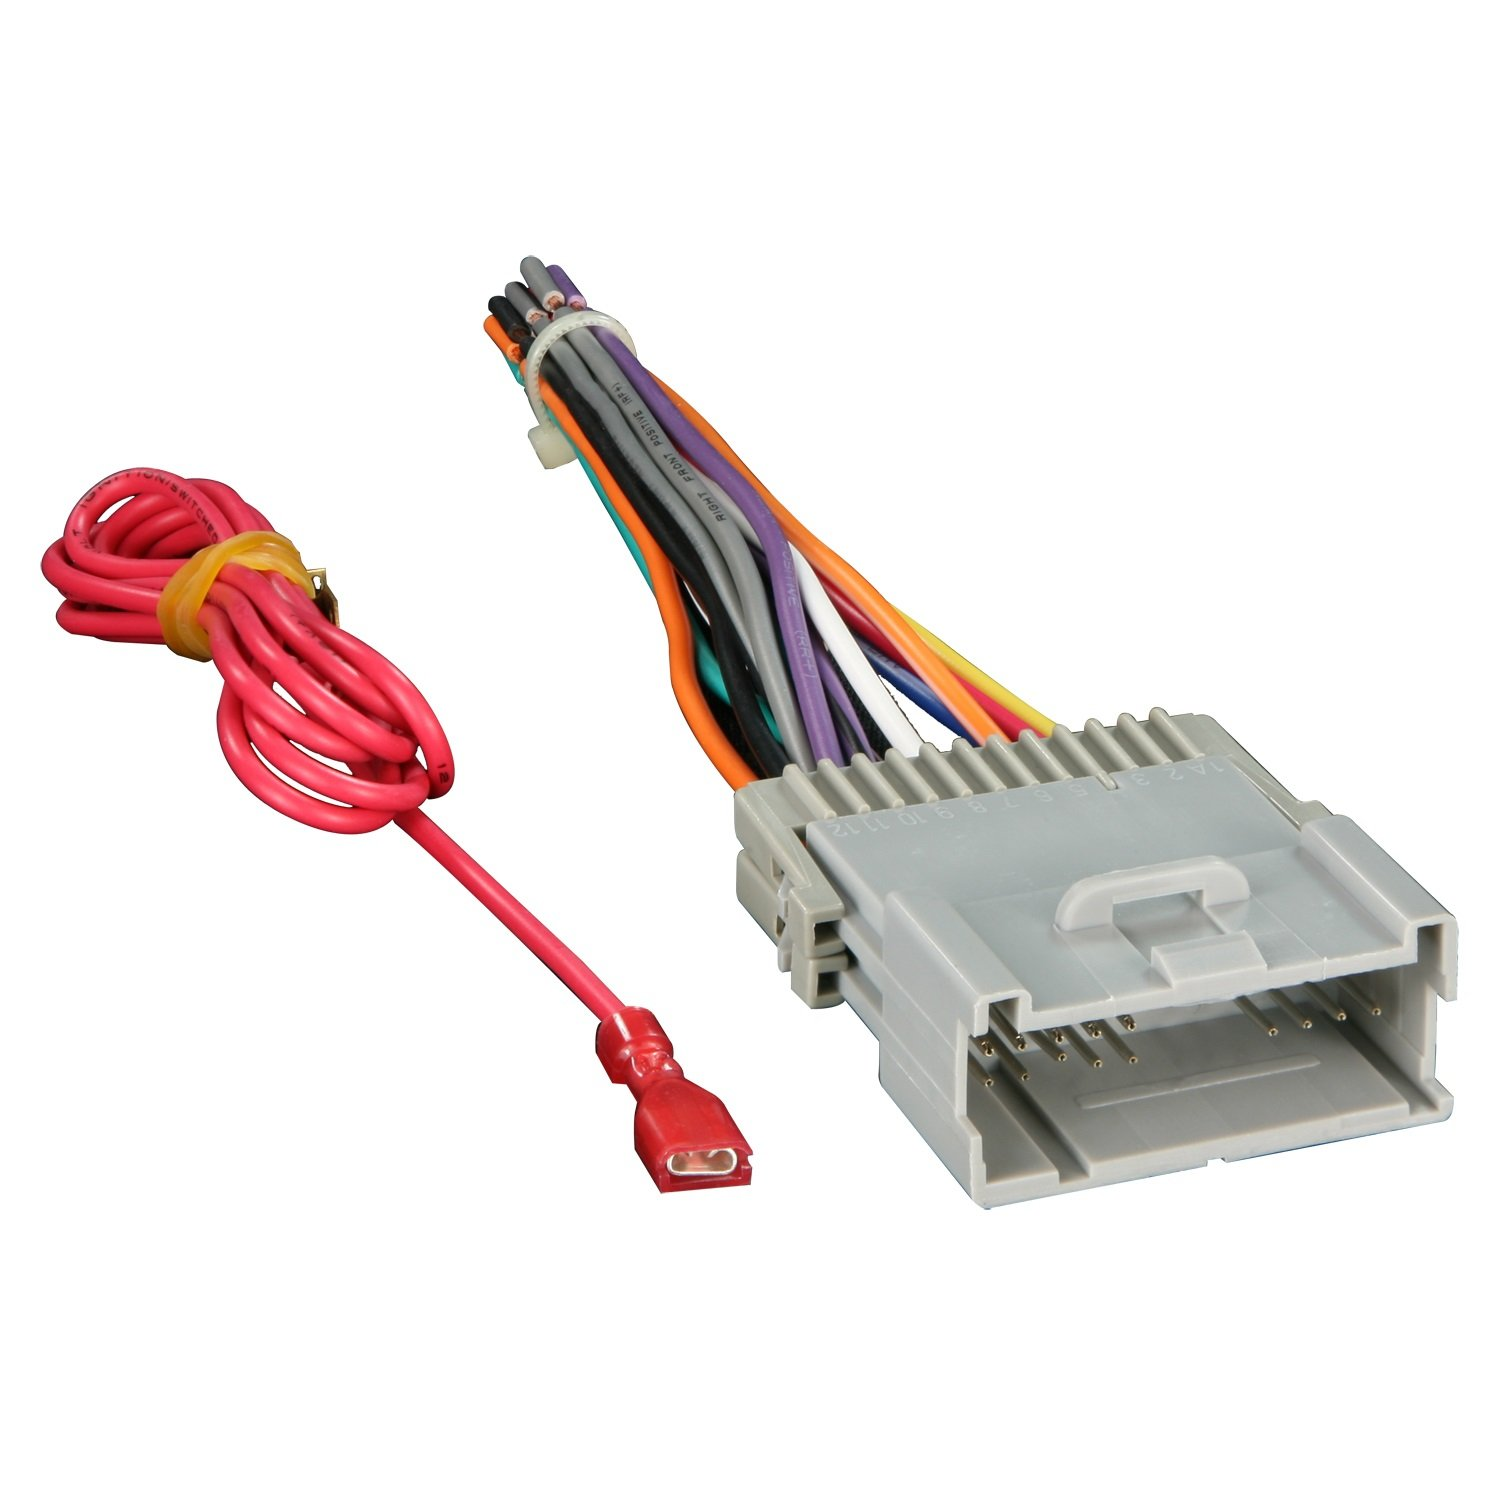 61eewxp9orL._SL1500_ amazon com metra 70 2003 radio wiring harness for gm 98 08 2005 silverado radio wiring harness at gsmportal.co